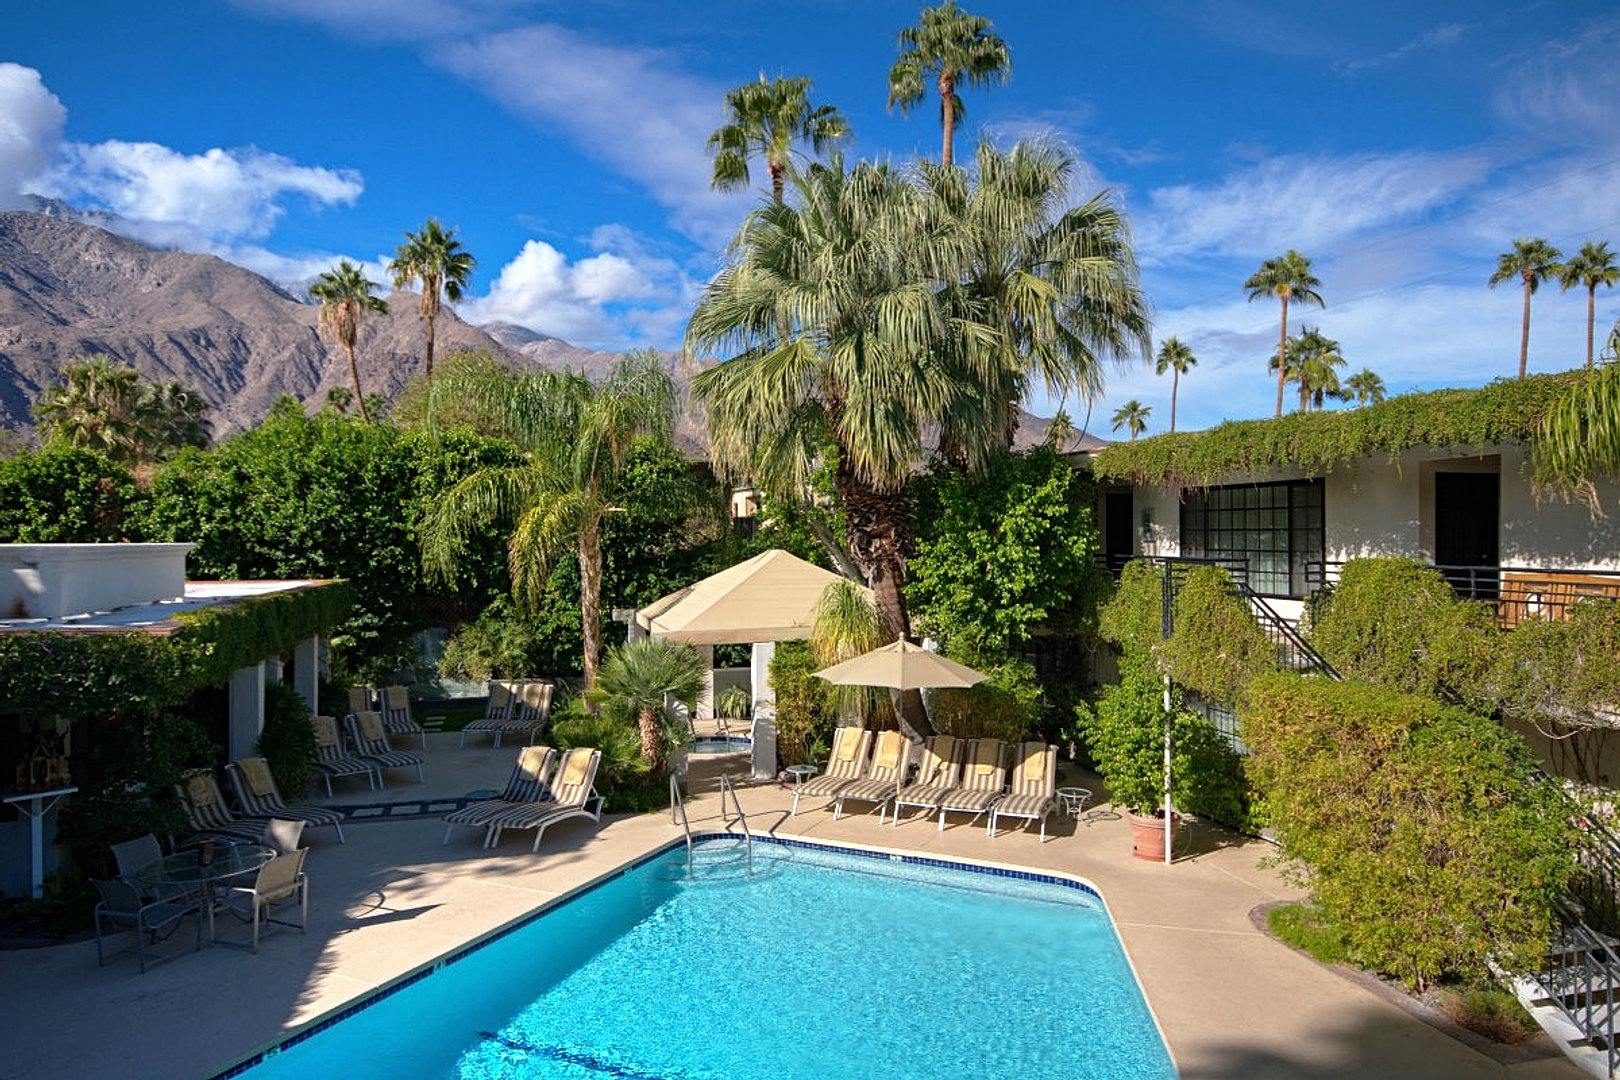 East Canyon Hotel And Spa Palm Springs